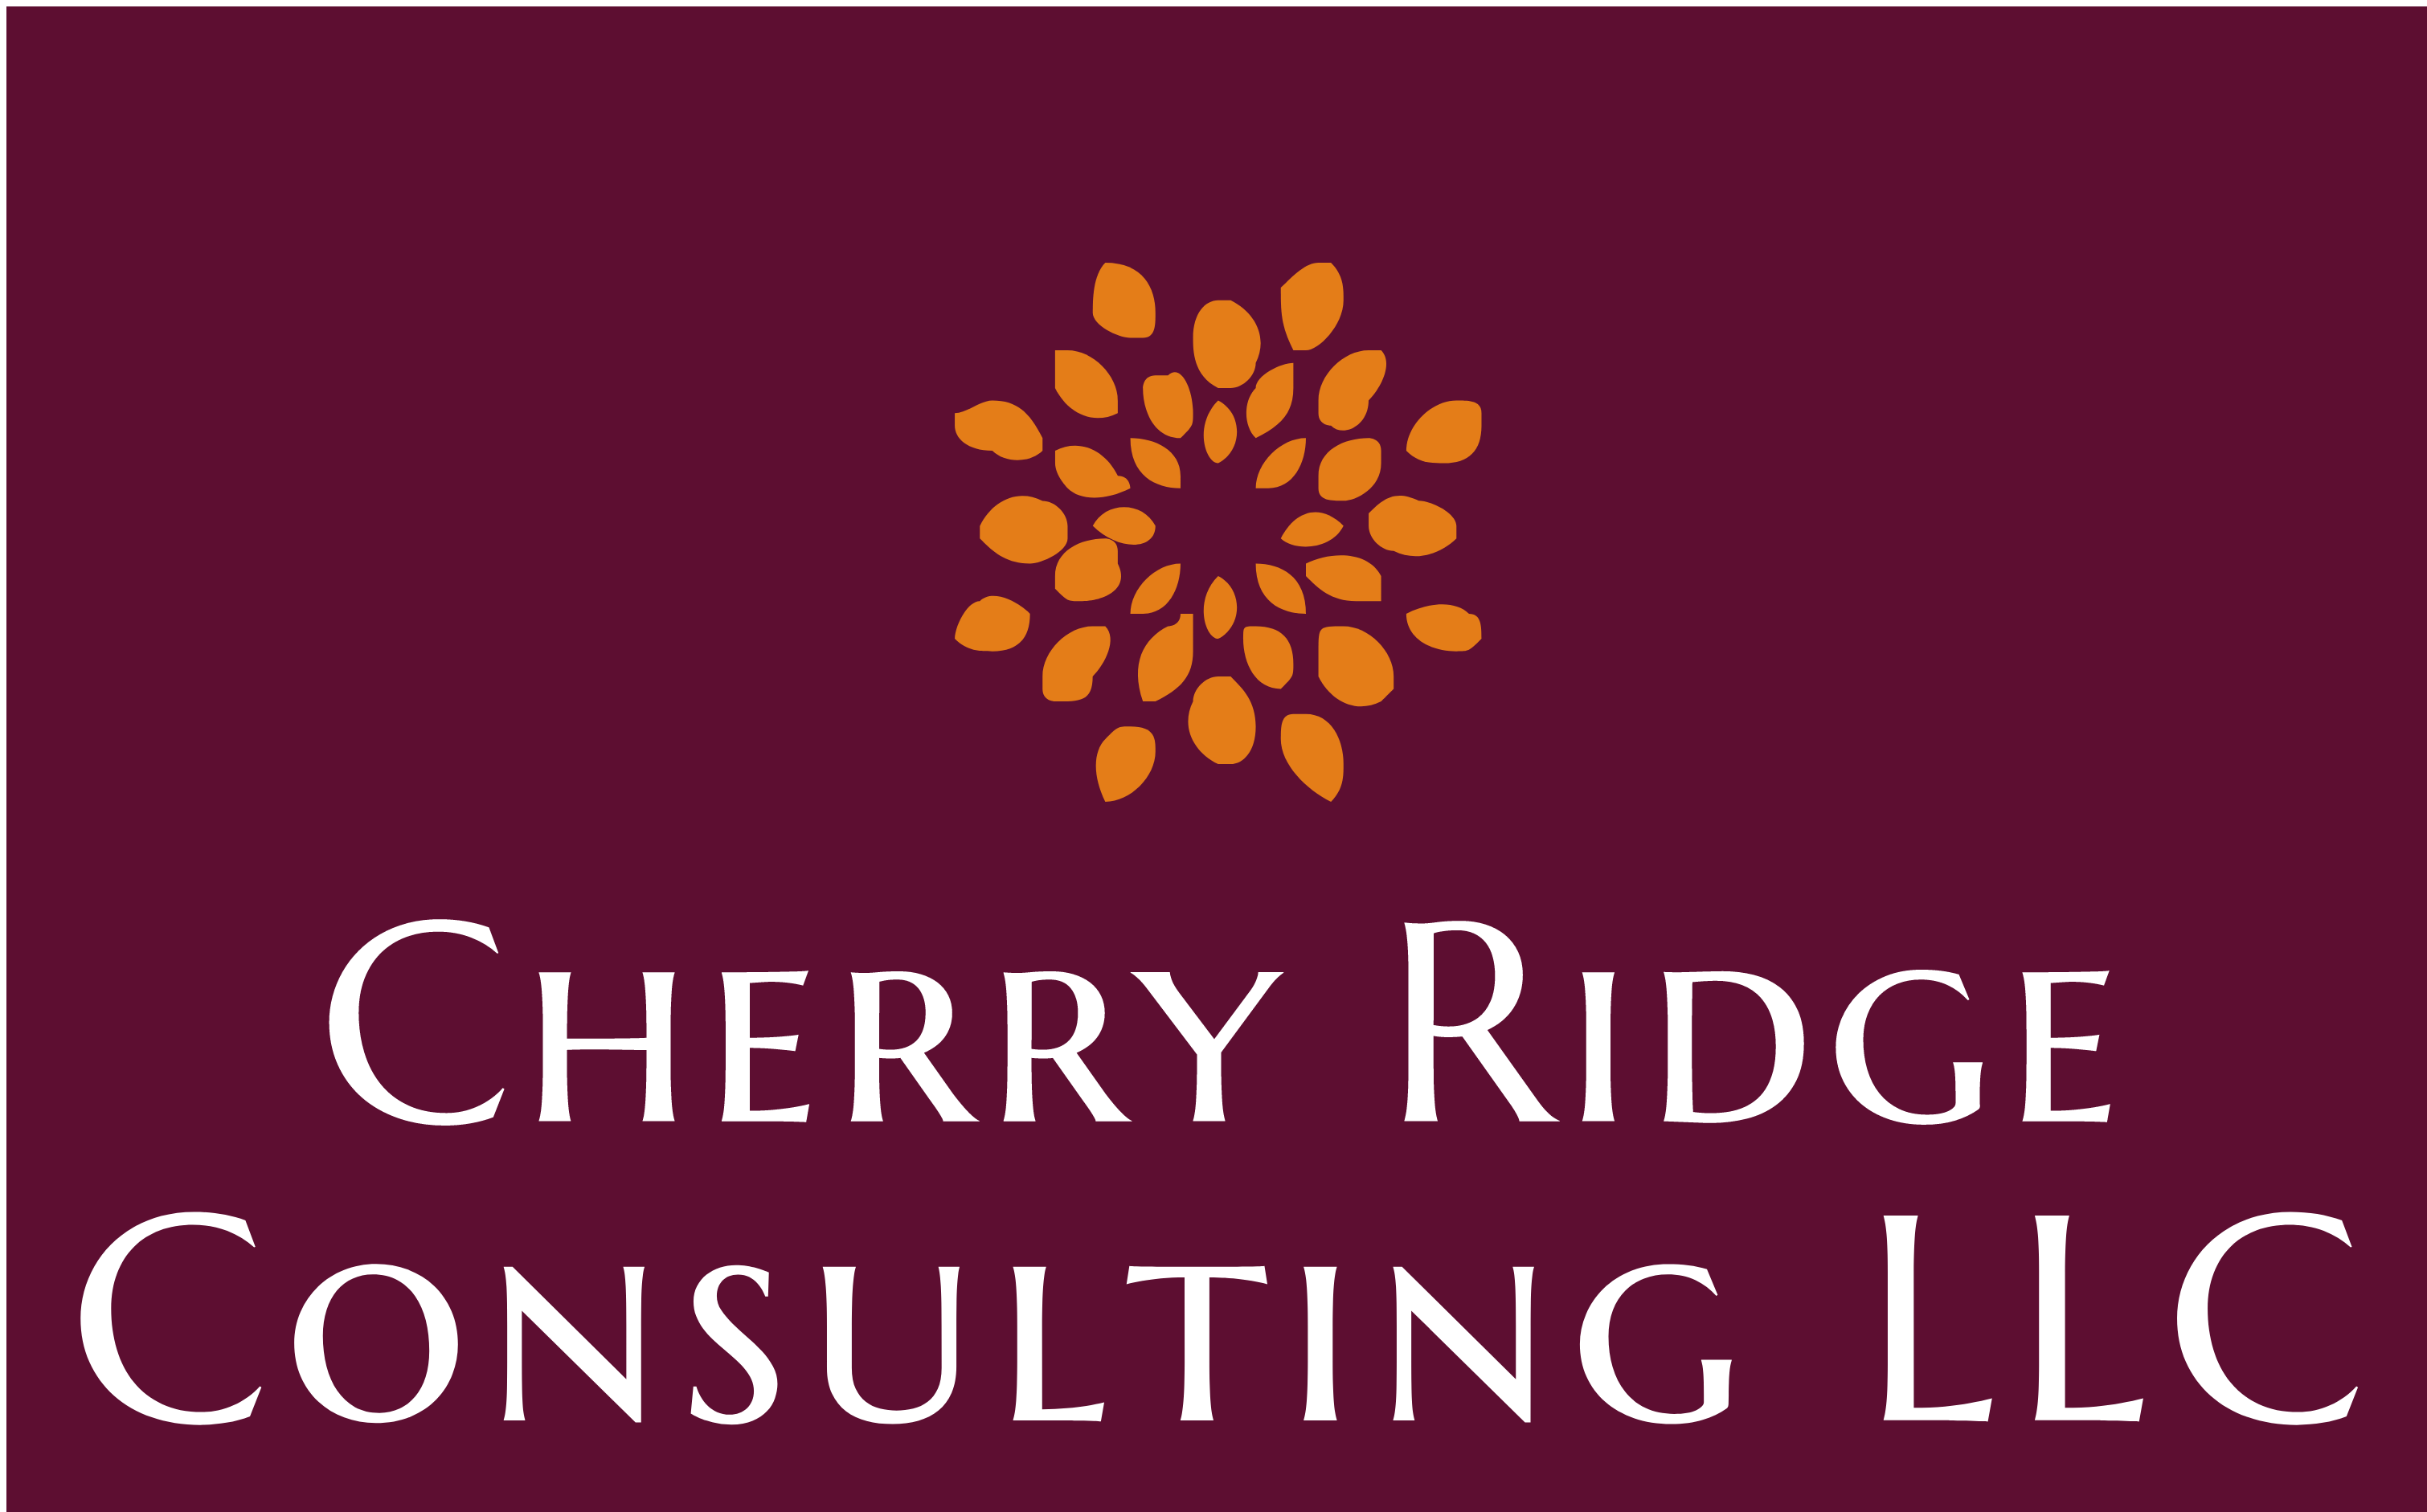 Cherry Ridge Consulting